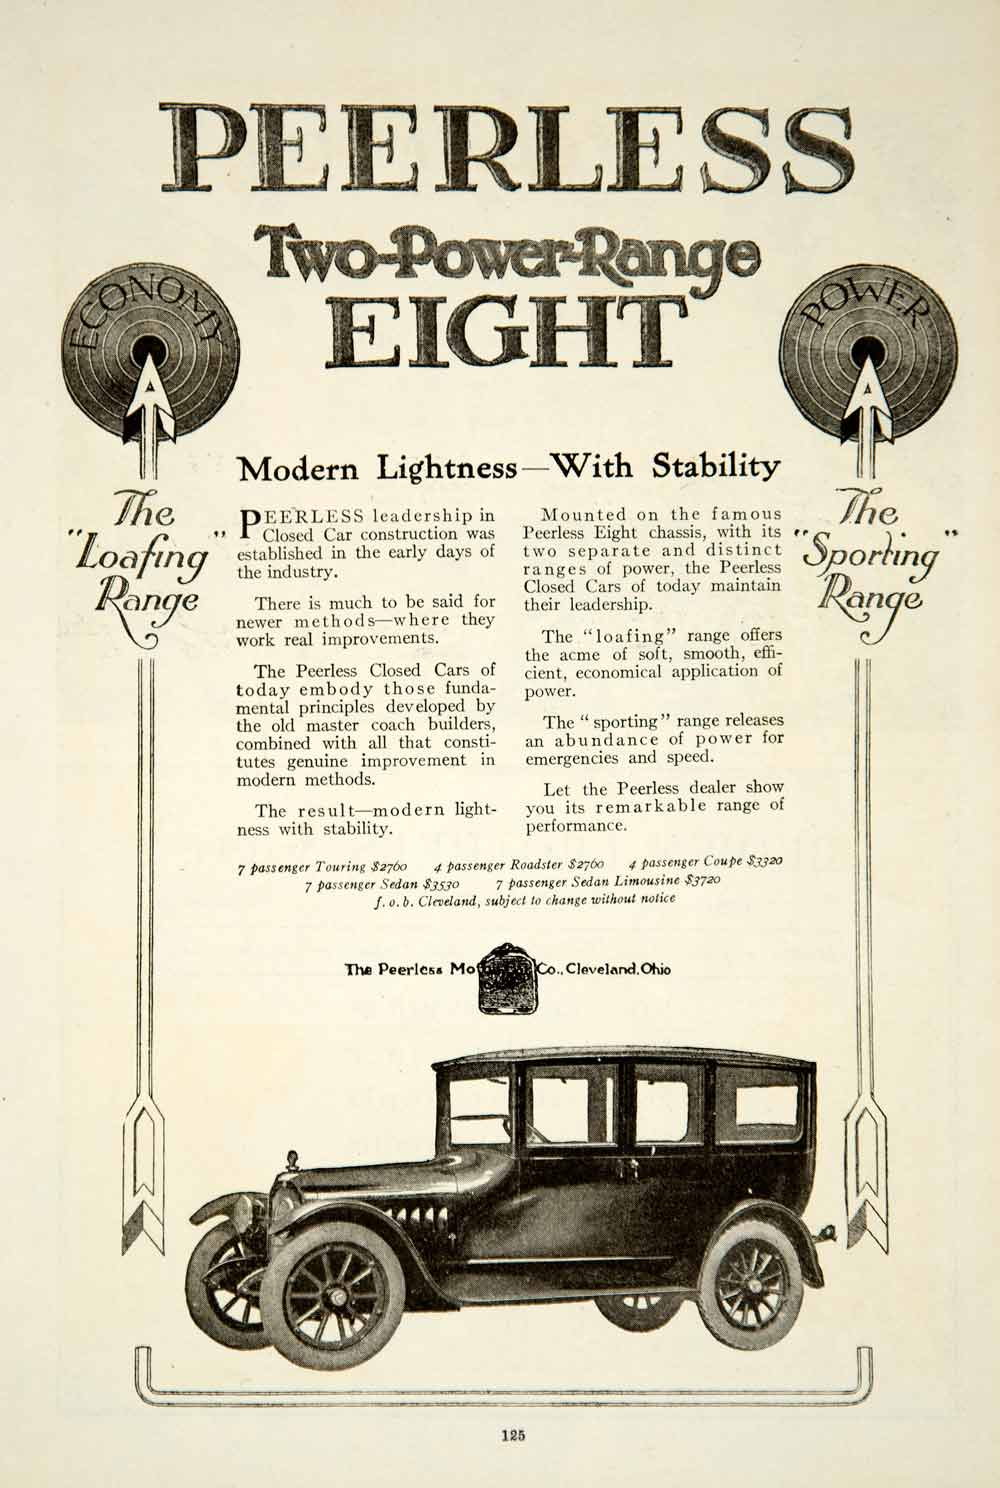 1919 Ad Peerless Motor Car Two-Power Range Eight Automobile Brass Era Auto YRR1